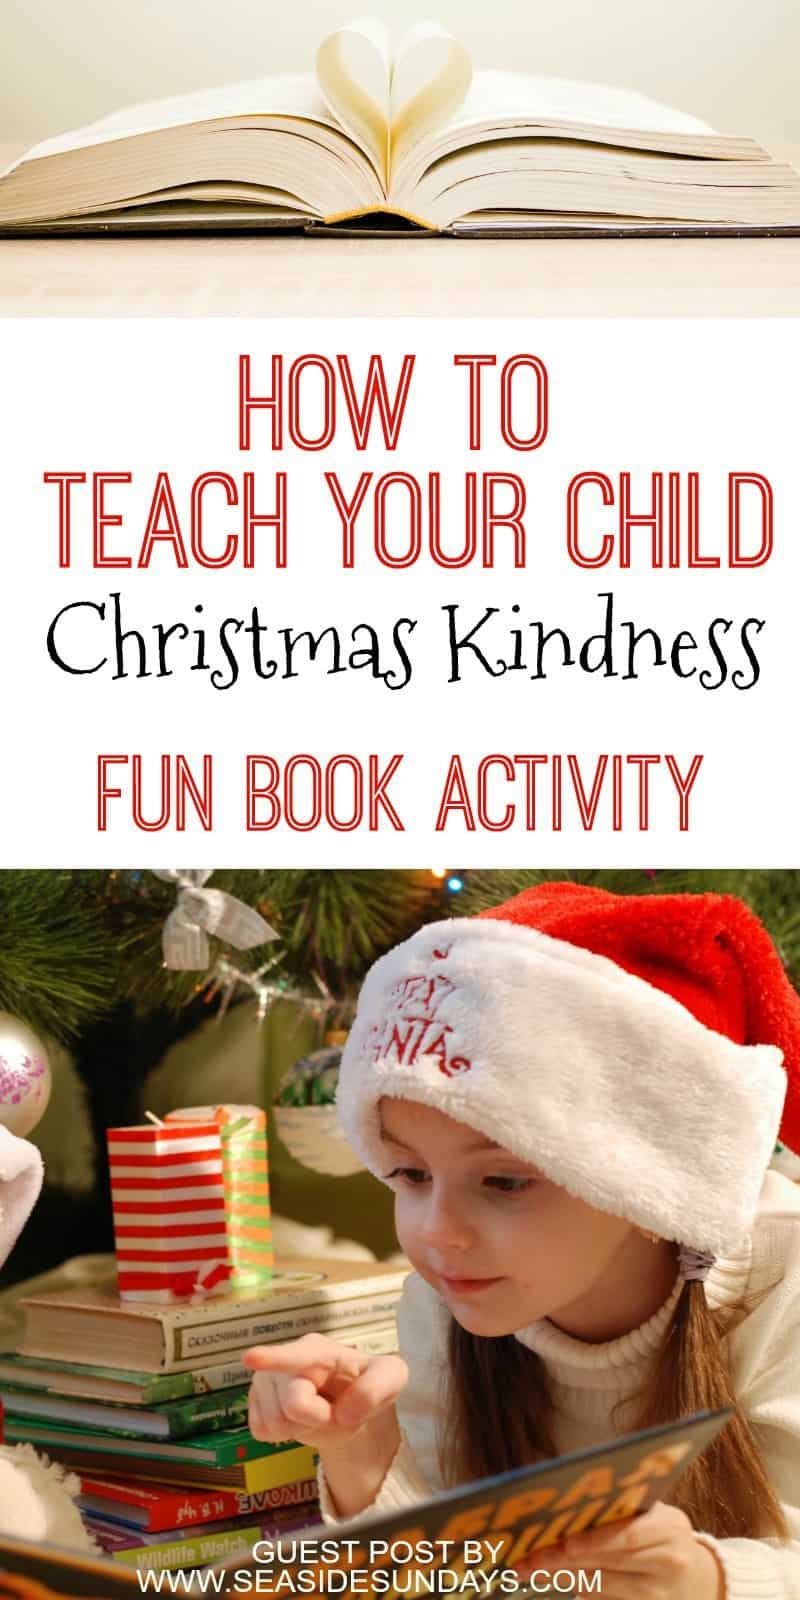 Teach your child kindness with Christmas Library Letters. This is a great activity to do with preschoolers and children of any age. #randomactsofkindness #forkids #library #activitiesforkids via @wondermomwannab